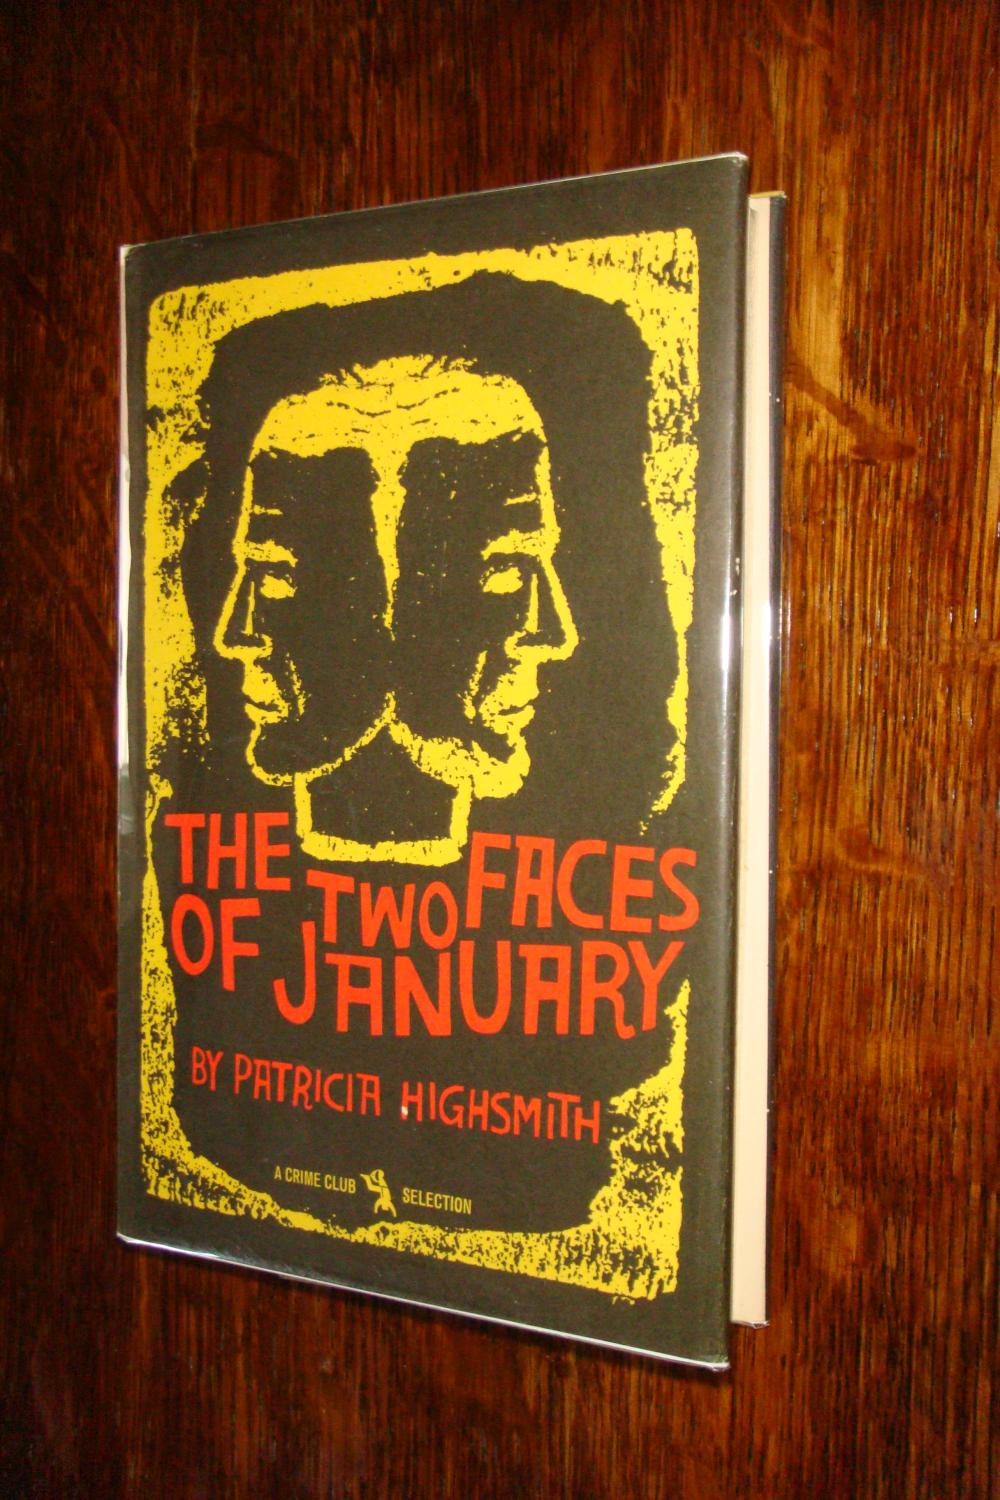 The Two Faces of January (1st printing) Highsmith, Patricia Near Fine Hardcover